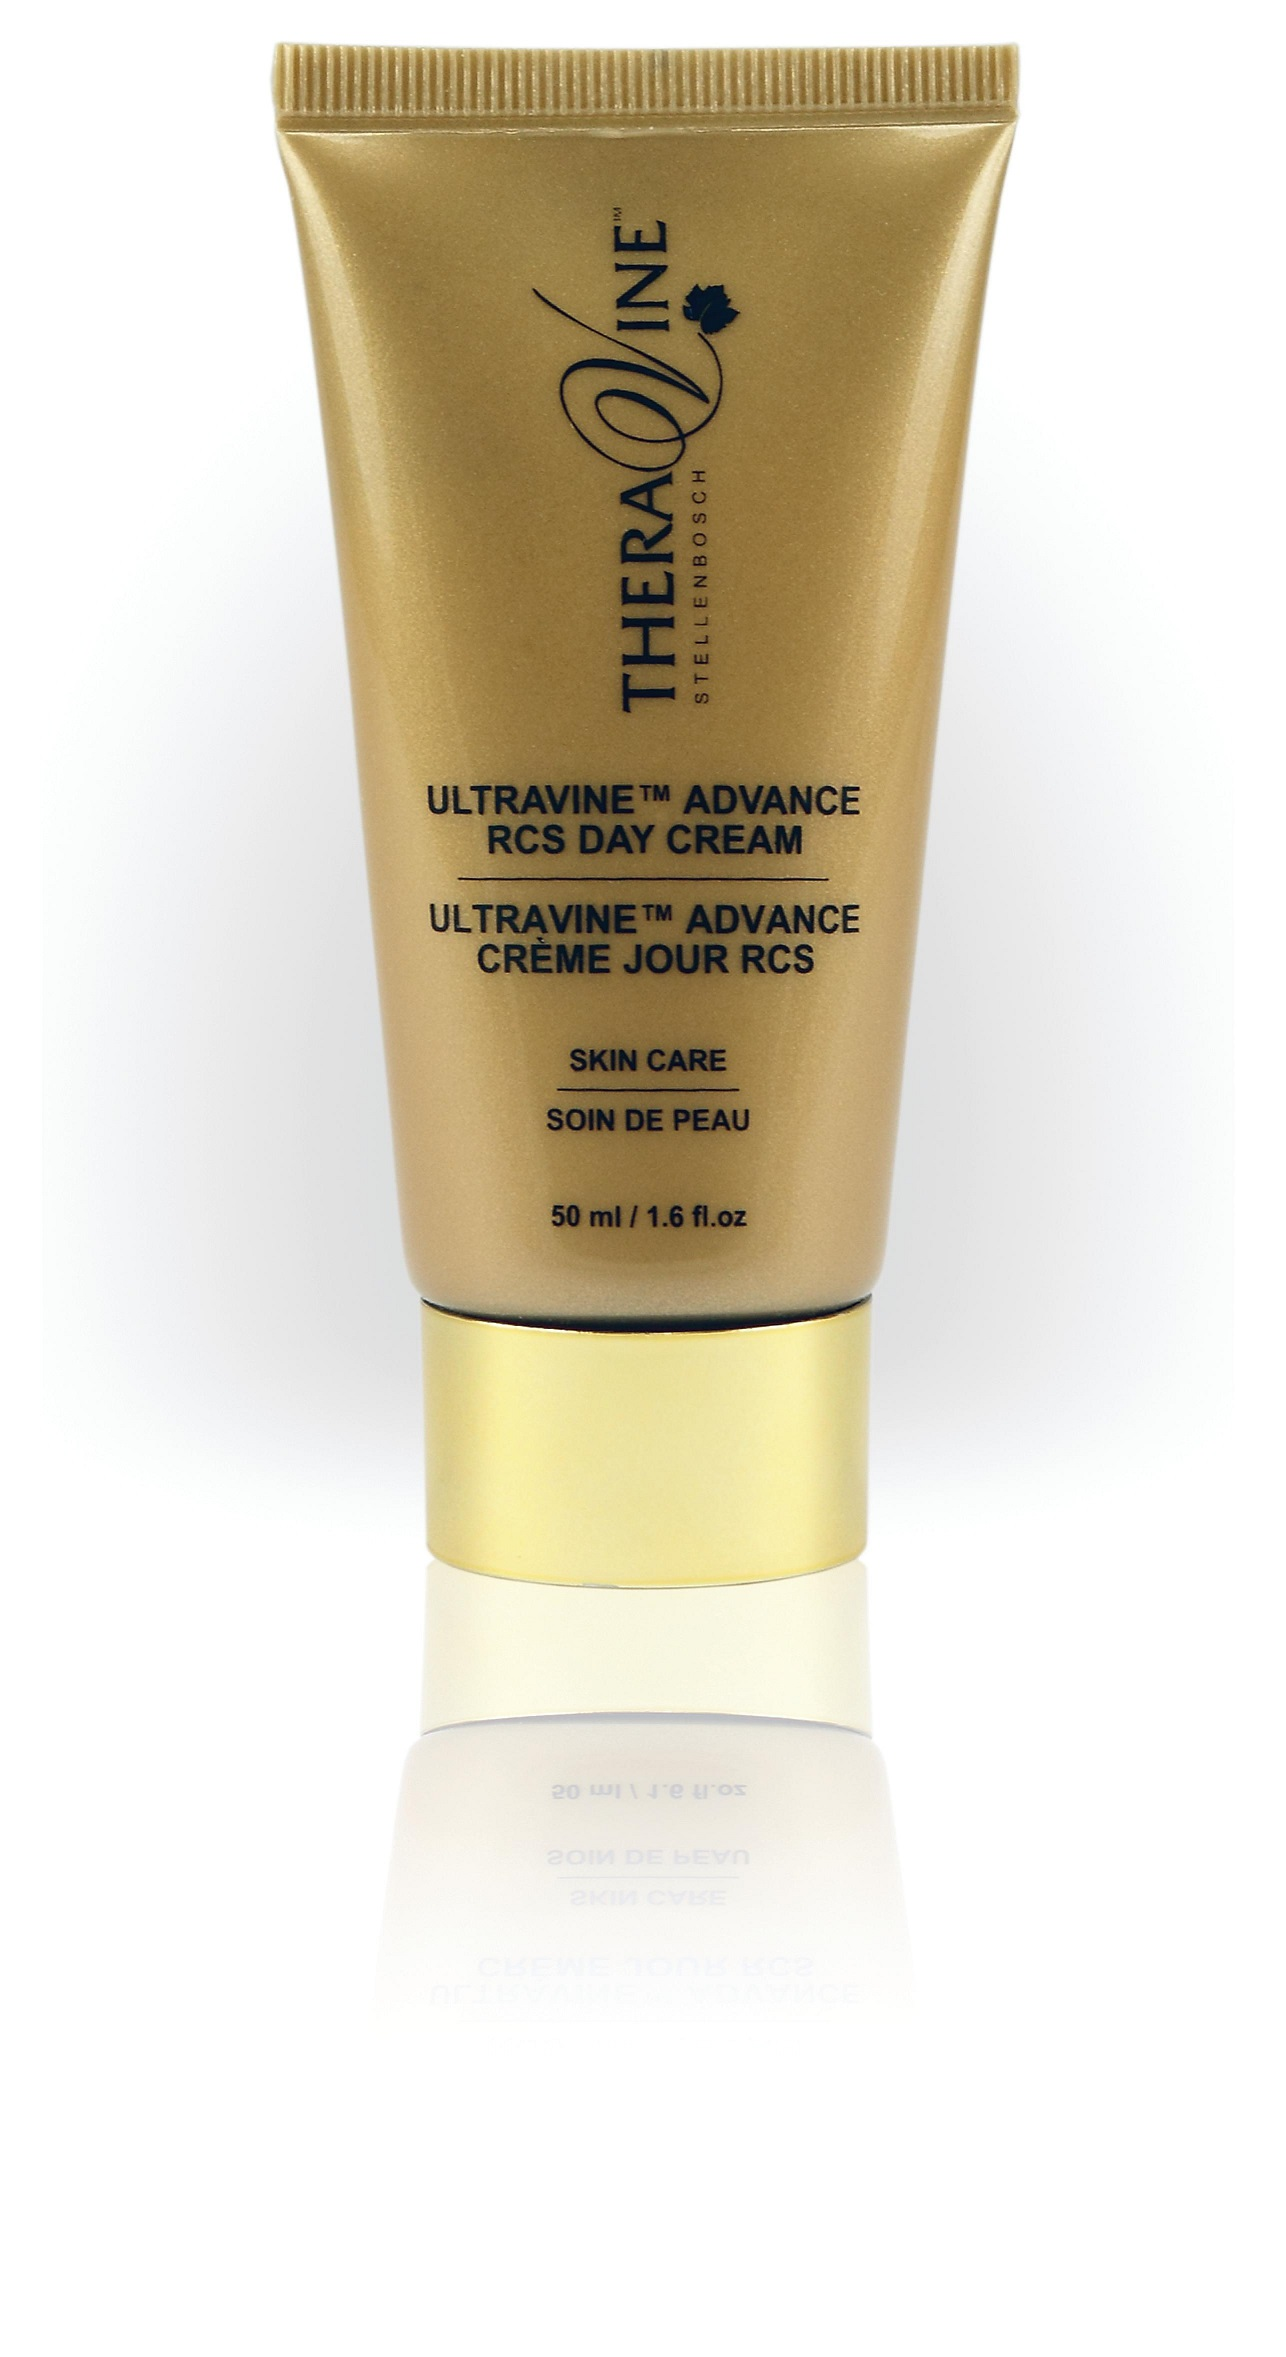 UltraVine Advance-RCS Day Cream